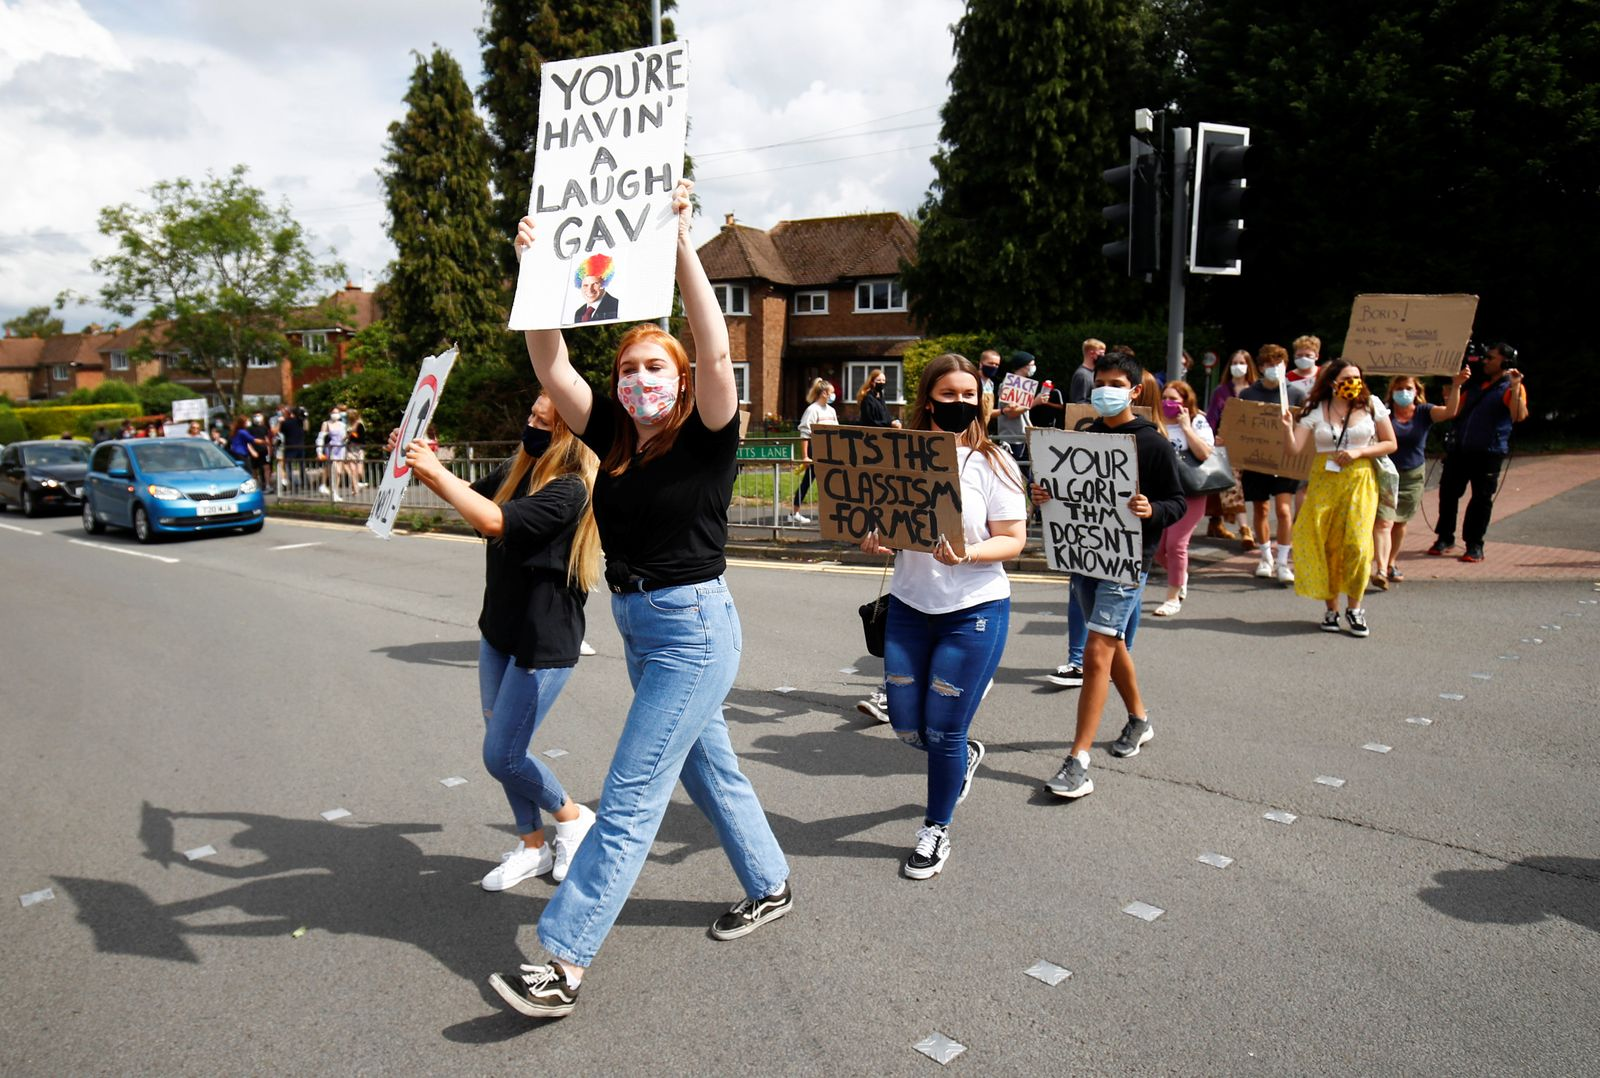 A-level students protest in South Staffordshire